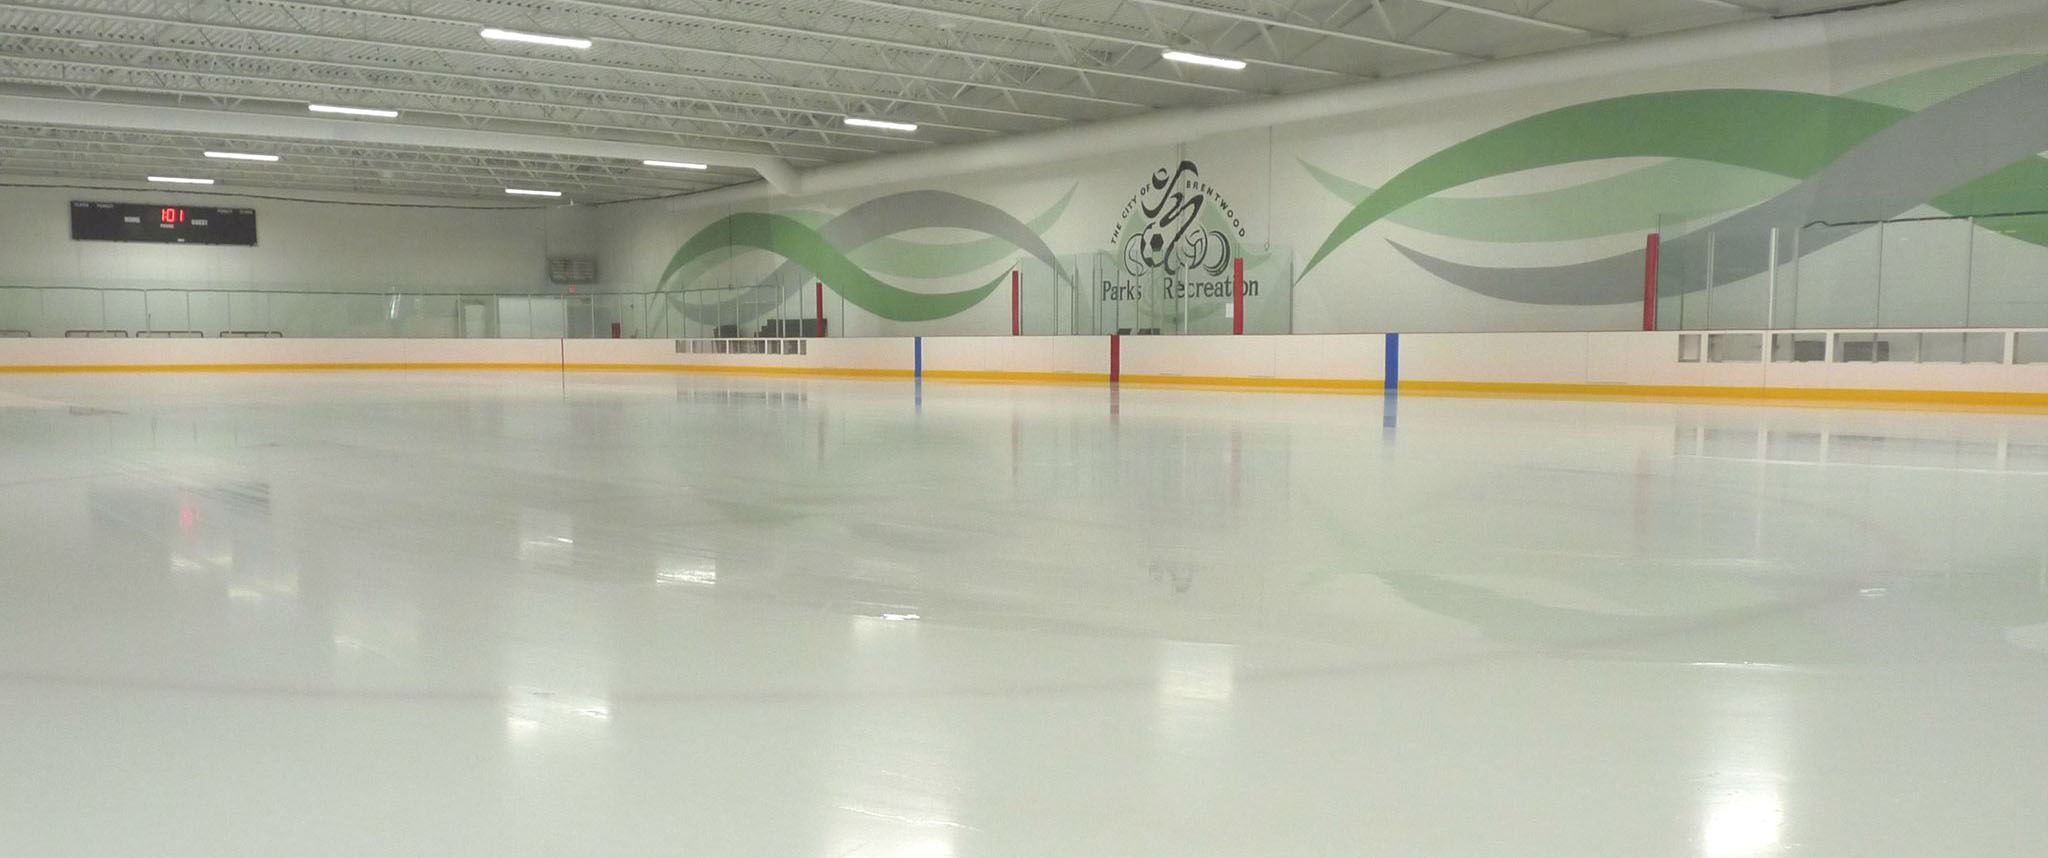 Brentwood Ice Rink